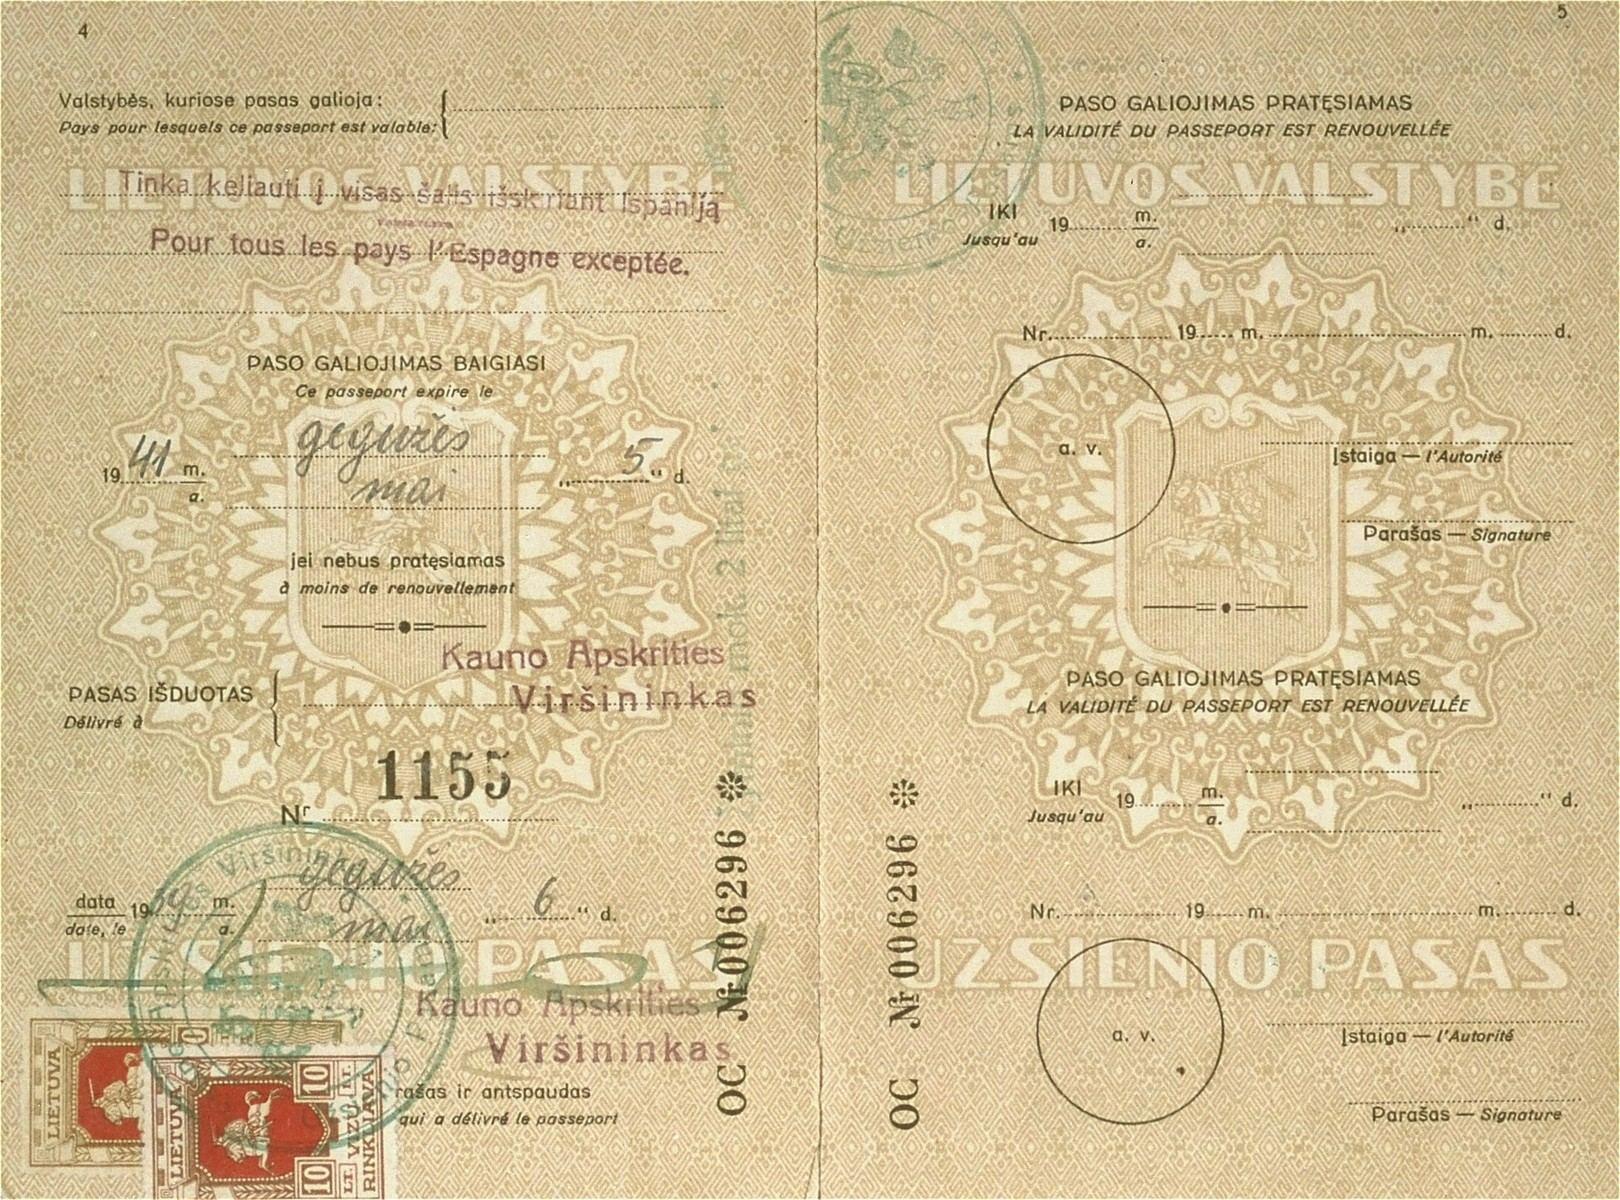 Lithuanian passport of Eliezer Kaplan (Lazarus Kaplanas) with the various visa stamps he required for his emigration from Lithuania to the United States in the fall of 1939.